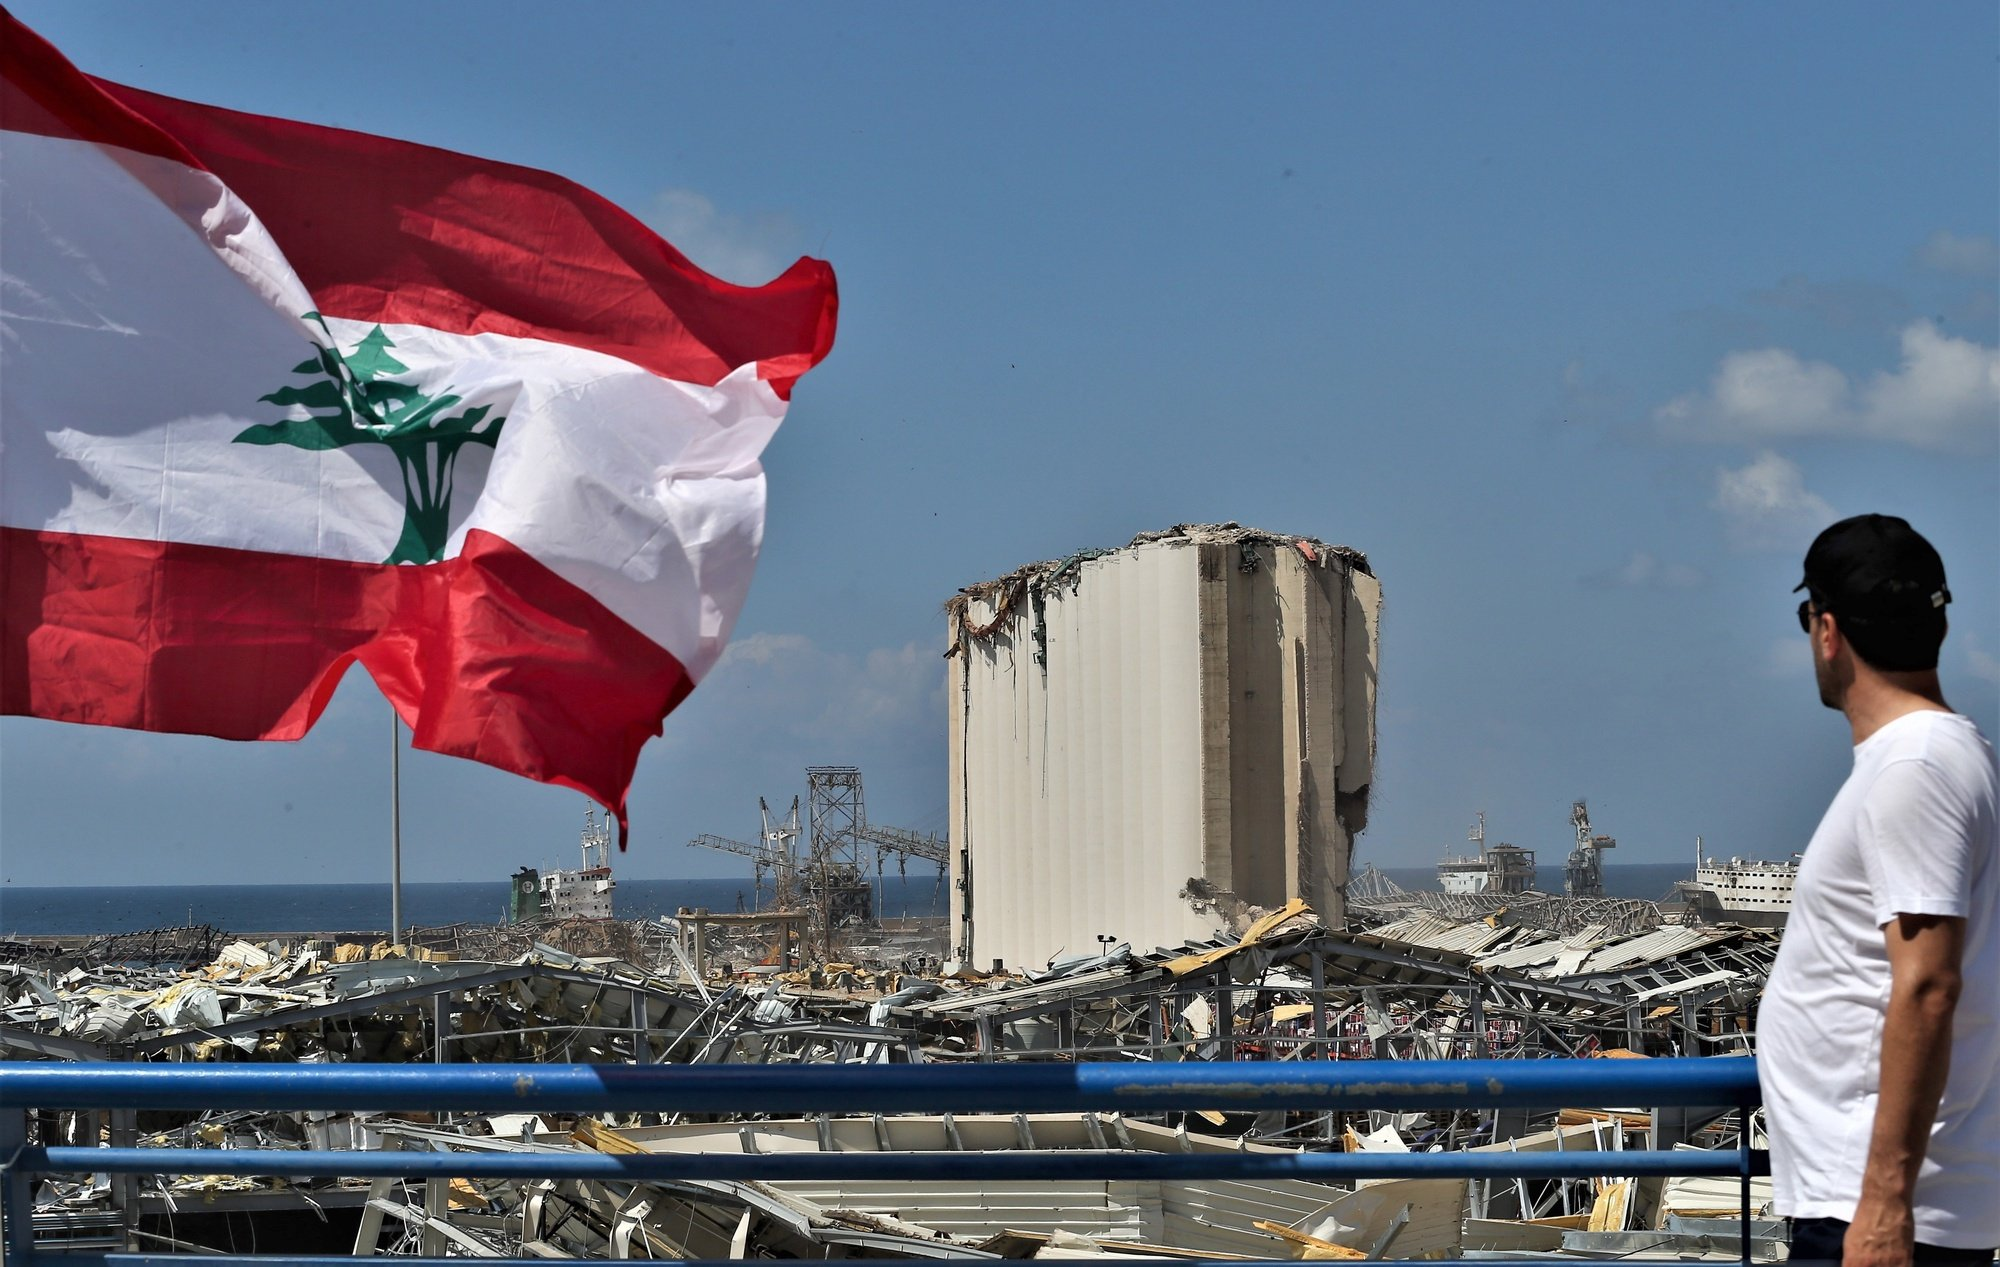 epaselect epa08594054 A man stands next to a Lebanese flag on a bridge overlooking the damaged Beirut port and grain silos, in Beirut, Lebanon, 09 August 2020. Large numbers of families flocked to stand on the bridge overlooking the site of the explosion in the port to look closely and take pictures. Lebanese Health Ministry said at least 160 people were killed, and more than 6000 injured in the Beirut blast that devastated the port area on 04 August and believed to have been caused by an estimated 2,750 tons of ammonium nitrate stored in a warehouse.  EPA/NABIL MOUNZER